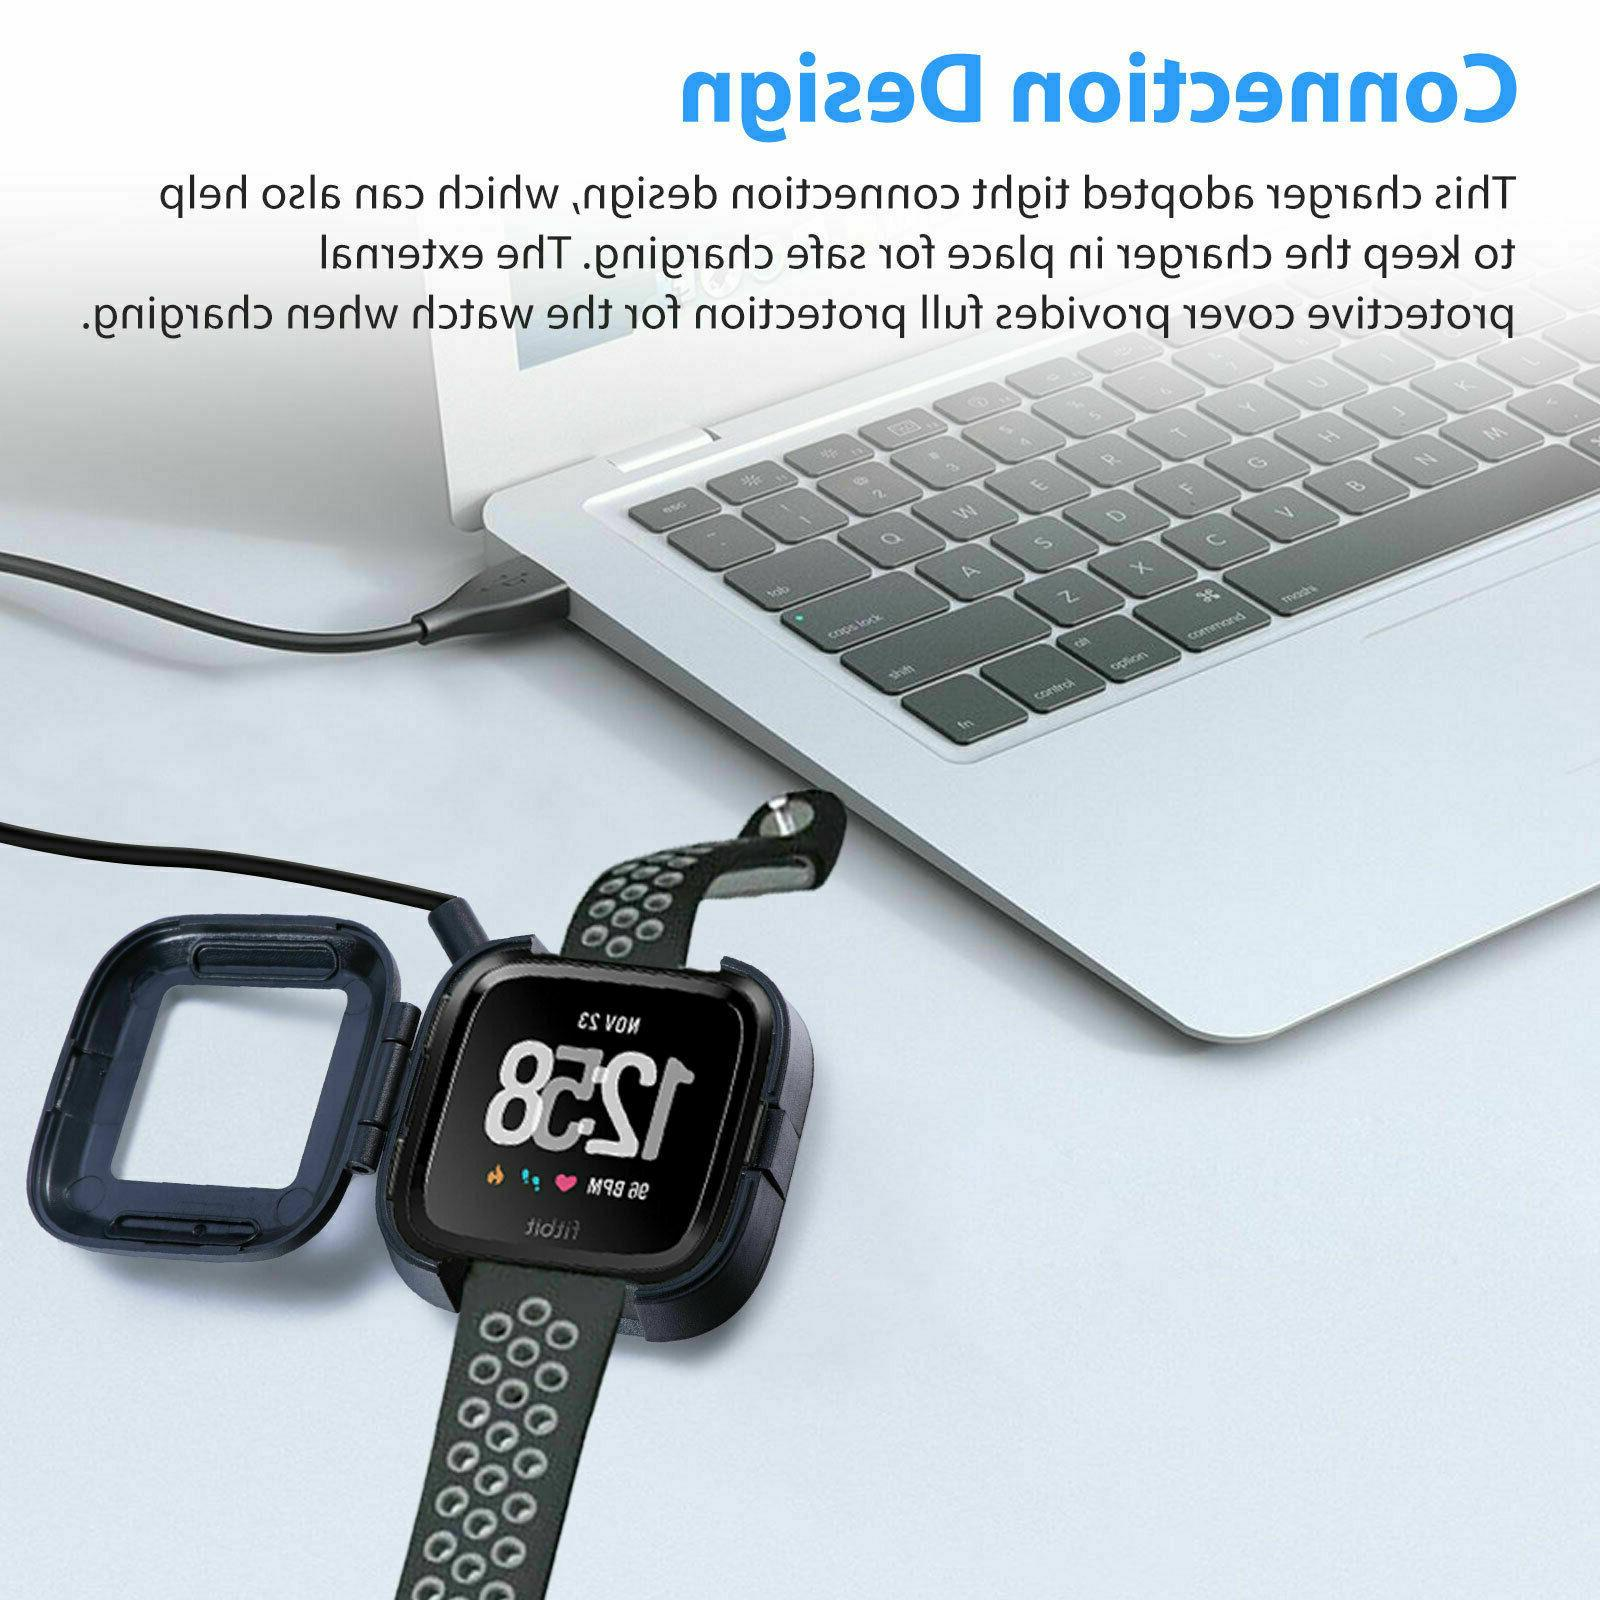 For Versa Screen Protector / Cable Dock Stand